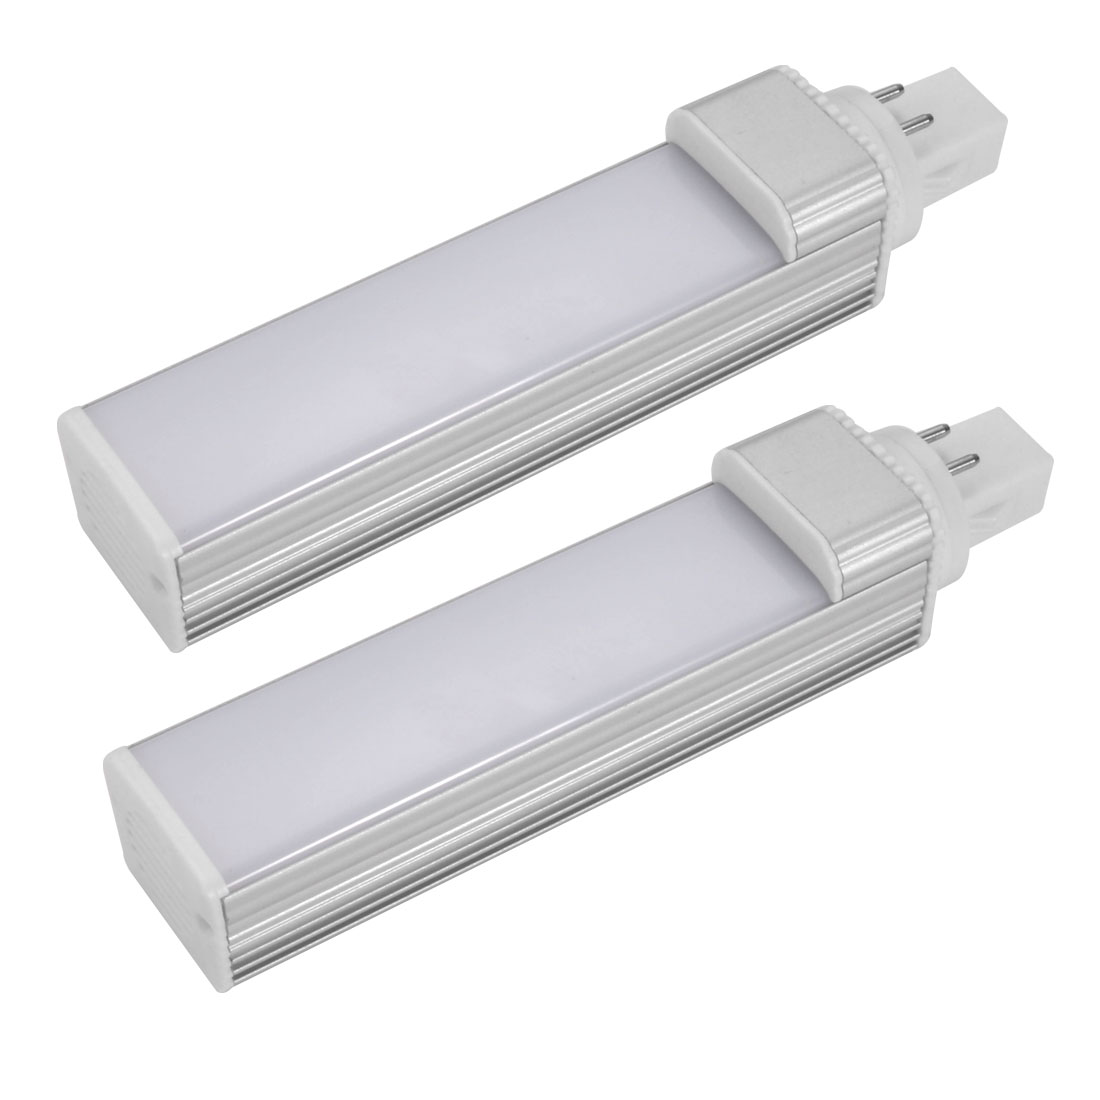 2pack DIY accessories for PLC Lamp G24 12W PLC Lamp Housing Kit w White Cover